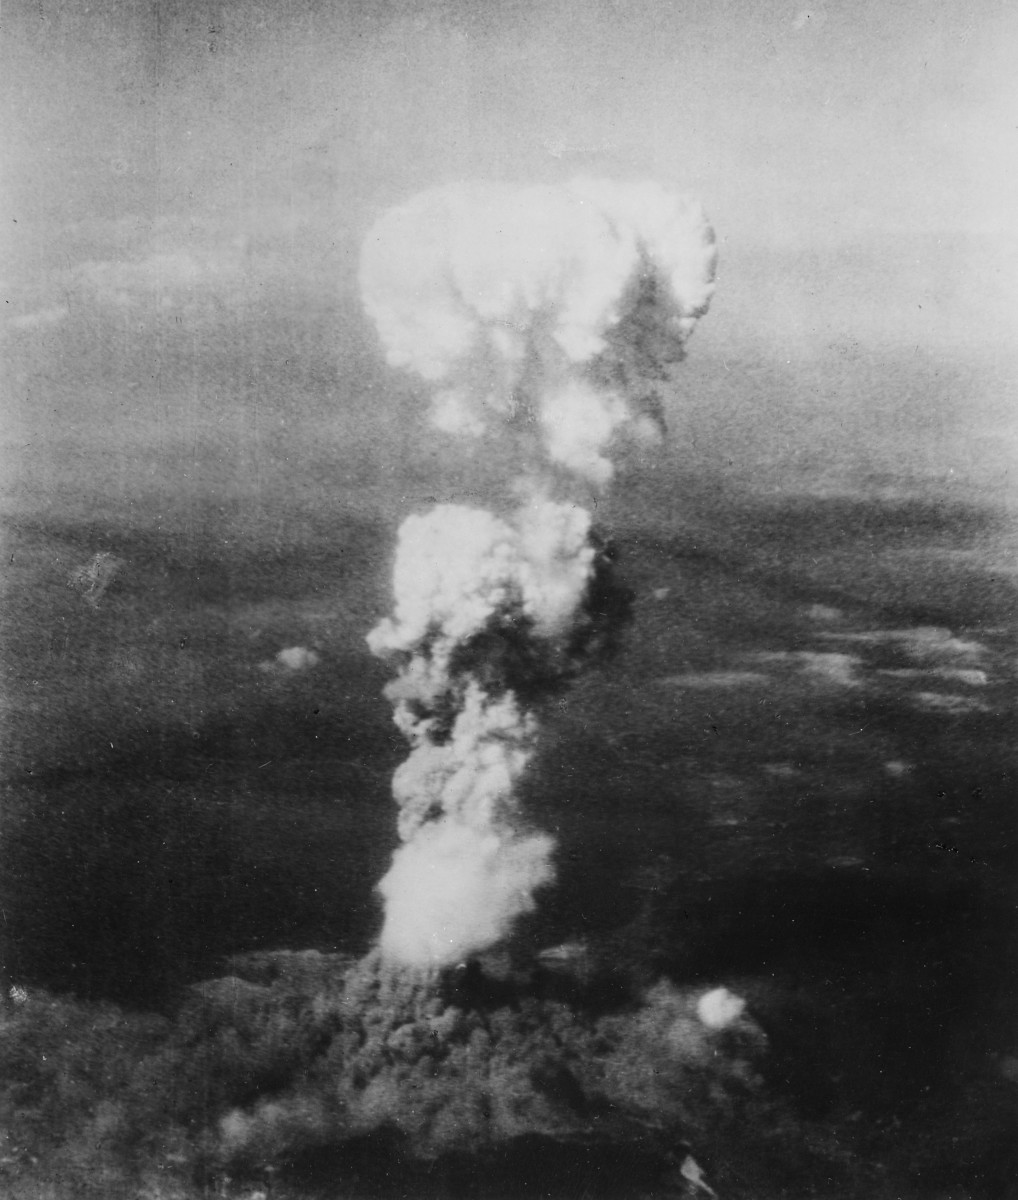 The mushroom cloud over Hiroshima after the dropping of Little Boy